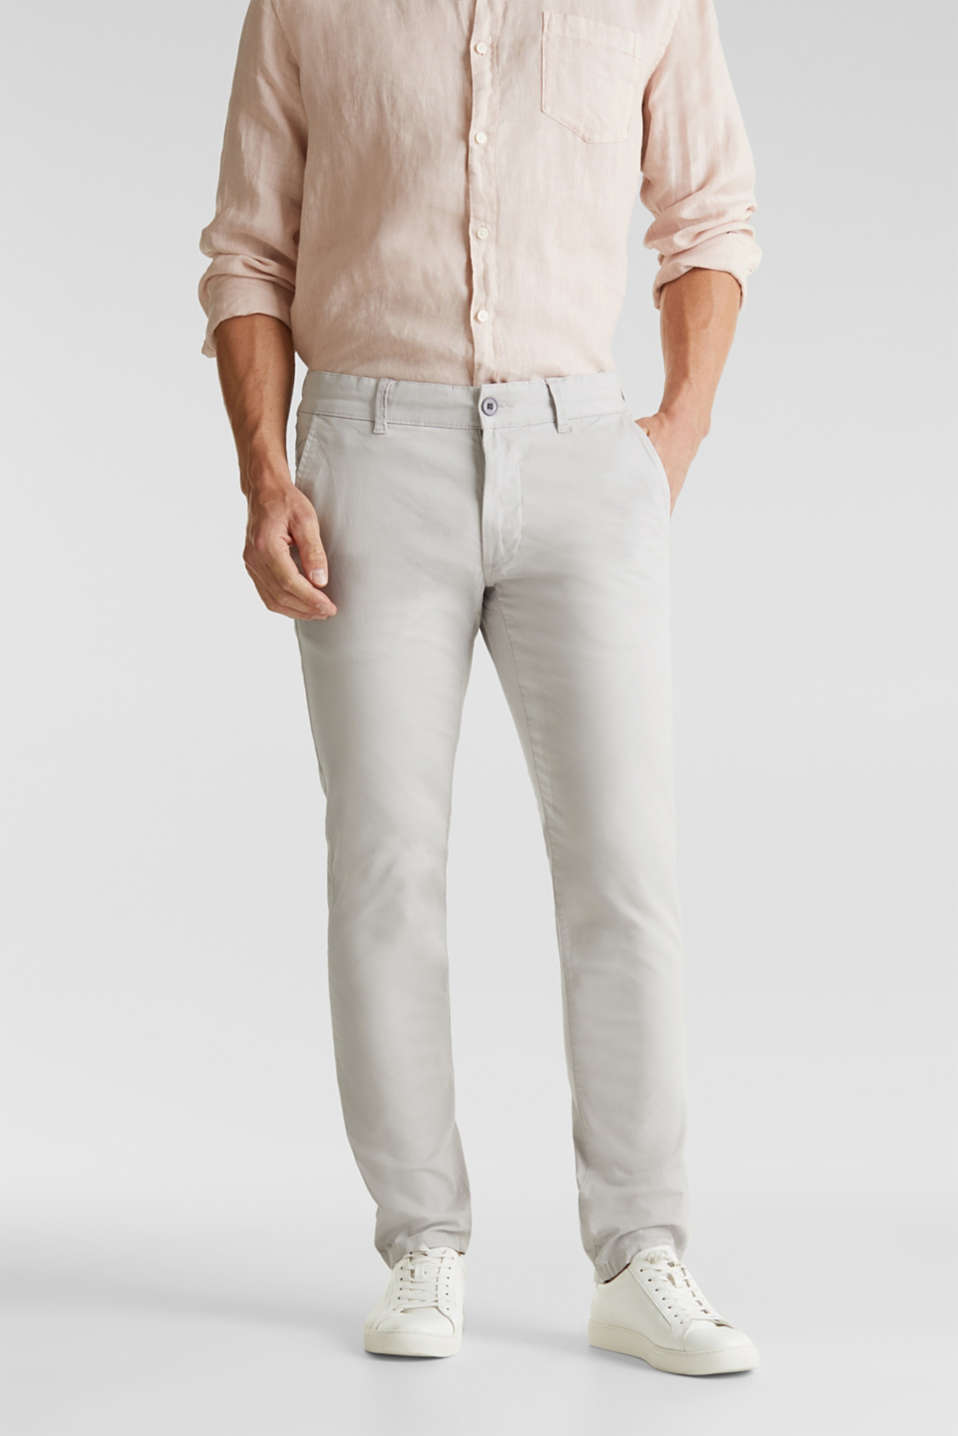 Esprit - Stretch chinos made of twill